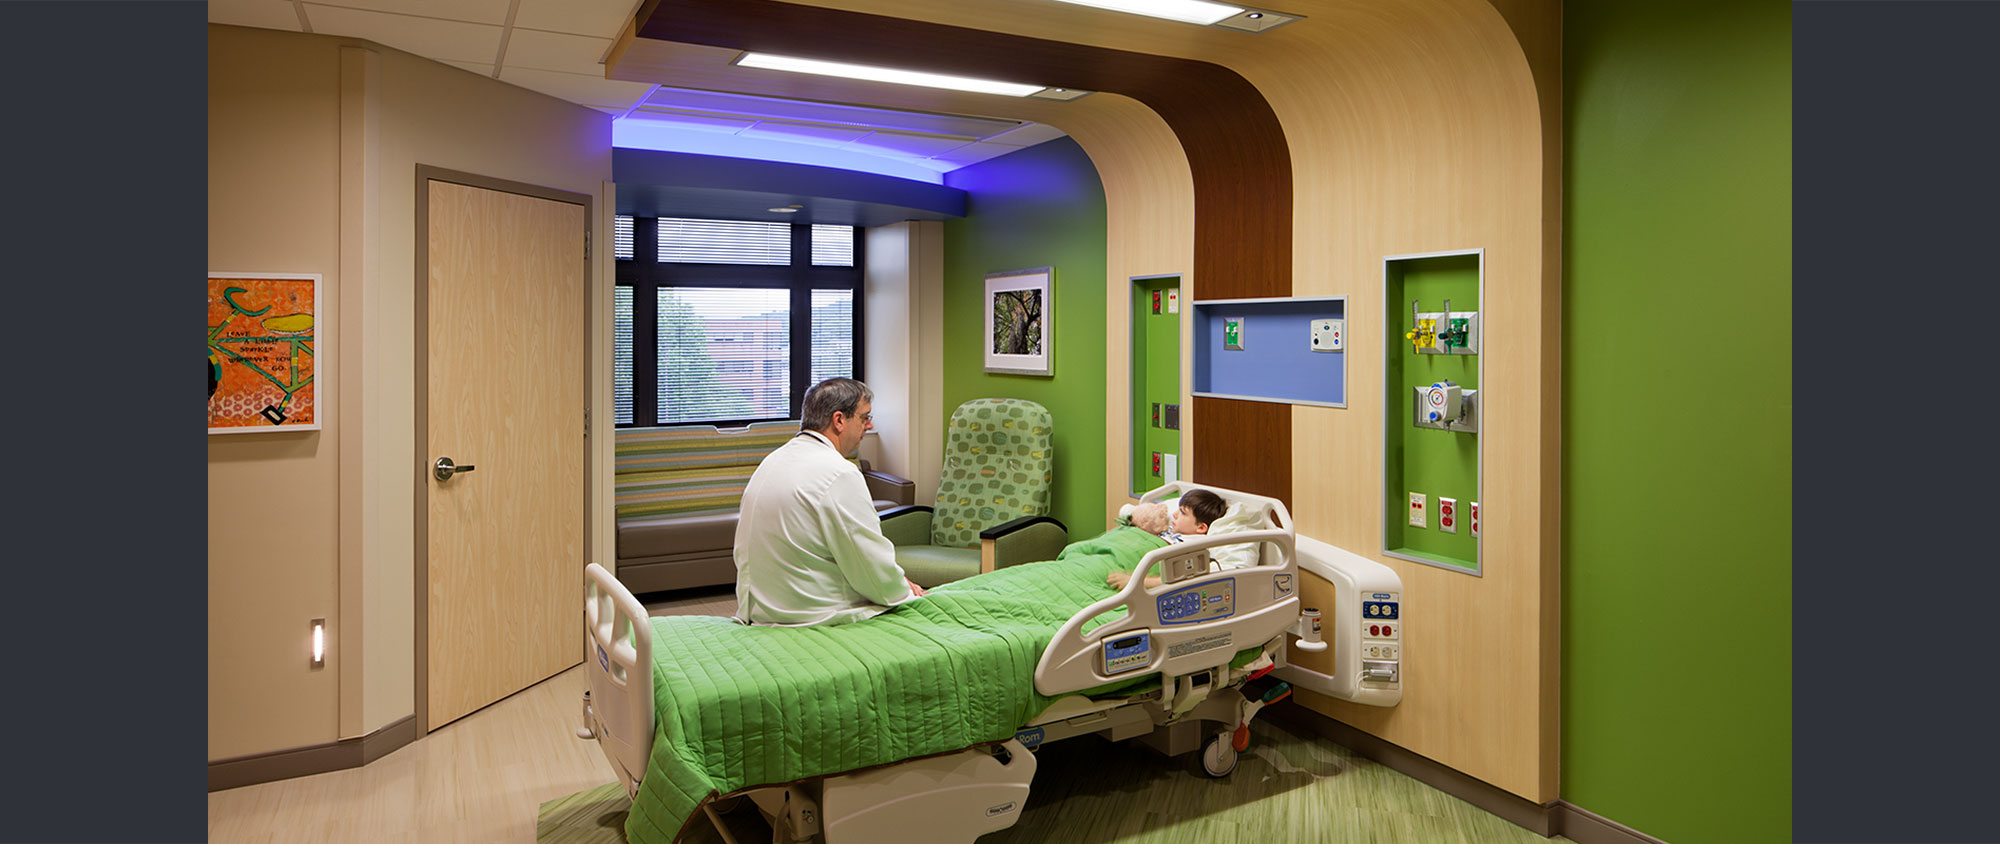 Monroe Carell Jr. Children's Hospital Vanderbilt at Williamson Medical Center